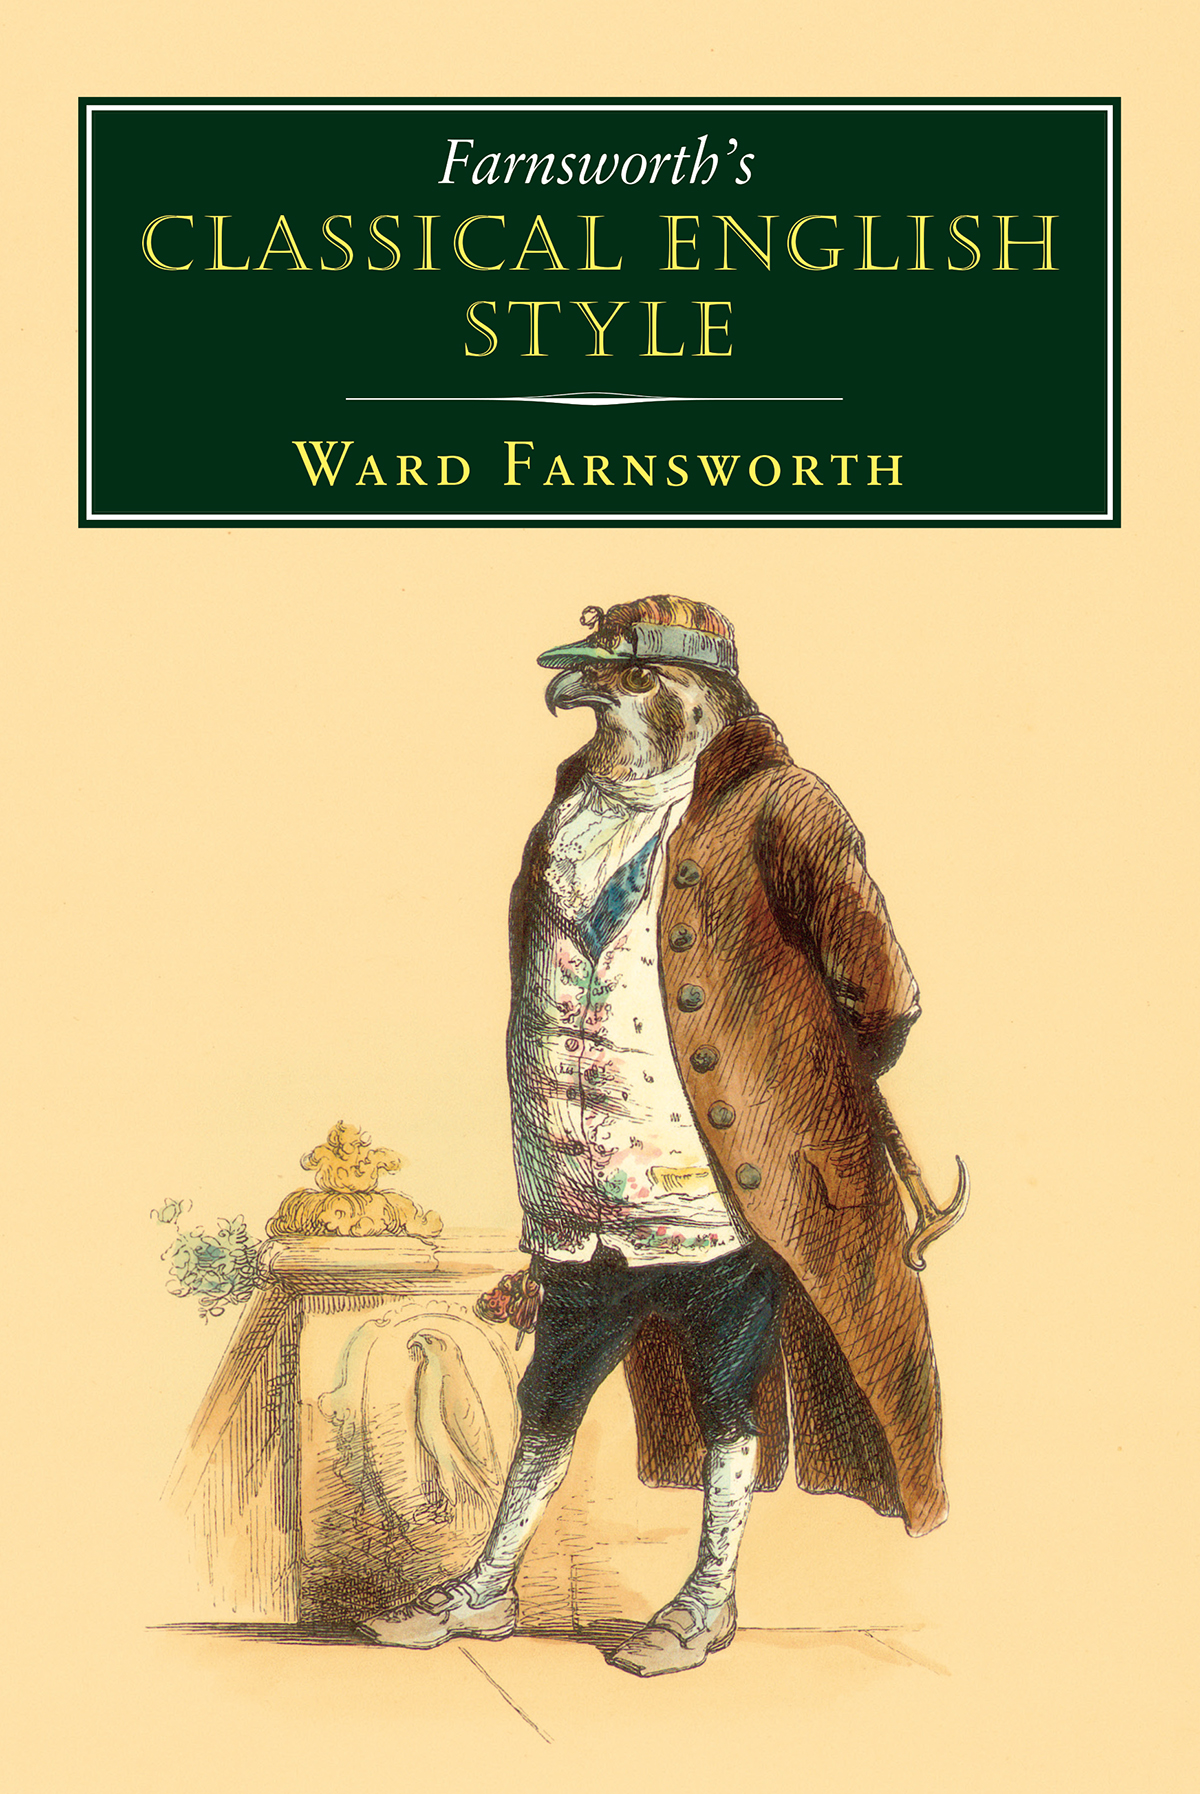 Farnsworth's Classical English Style